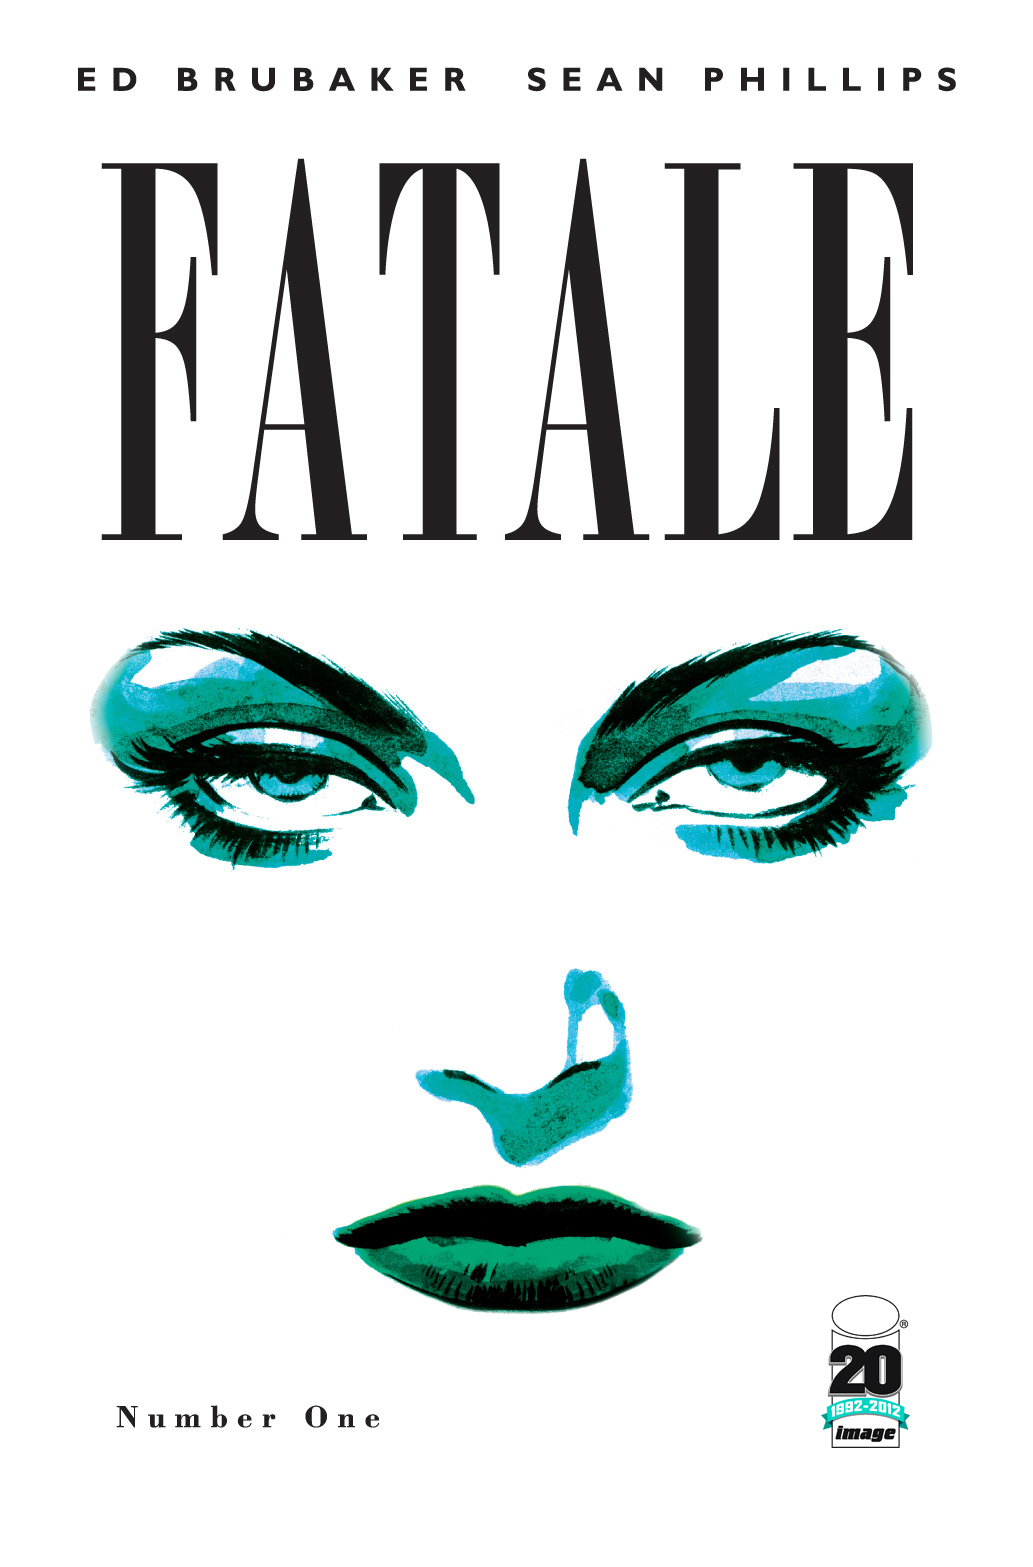 349894504328955 FATALE #1 reaches five printings